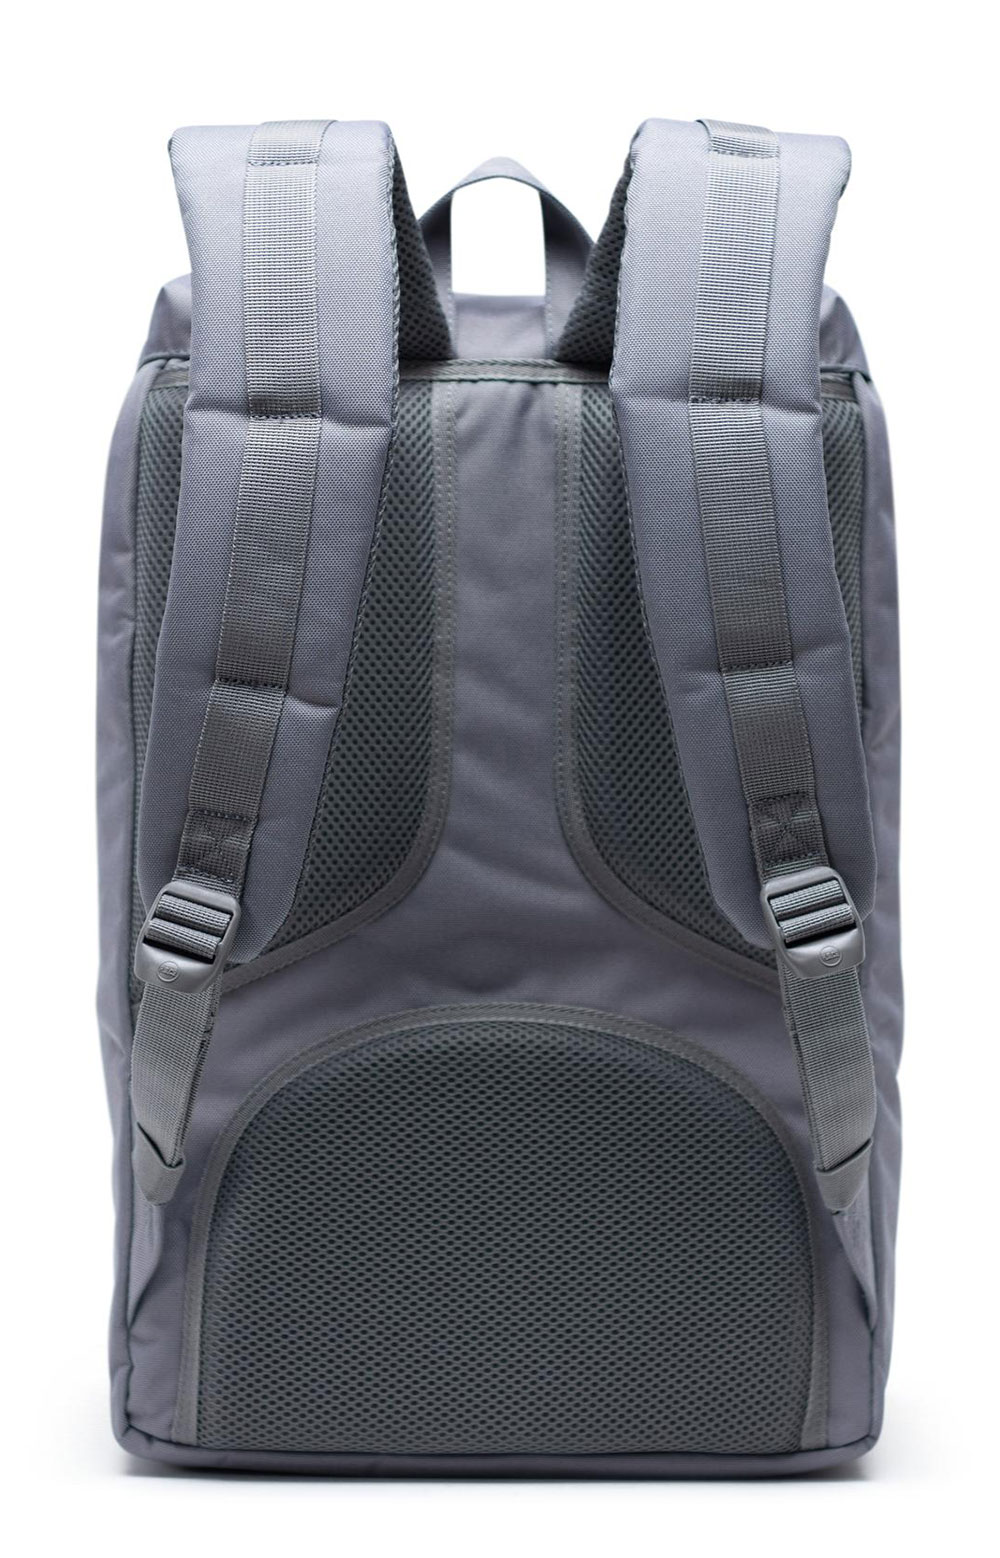 Little America Backpack - Grey/Black 4